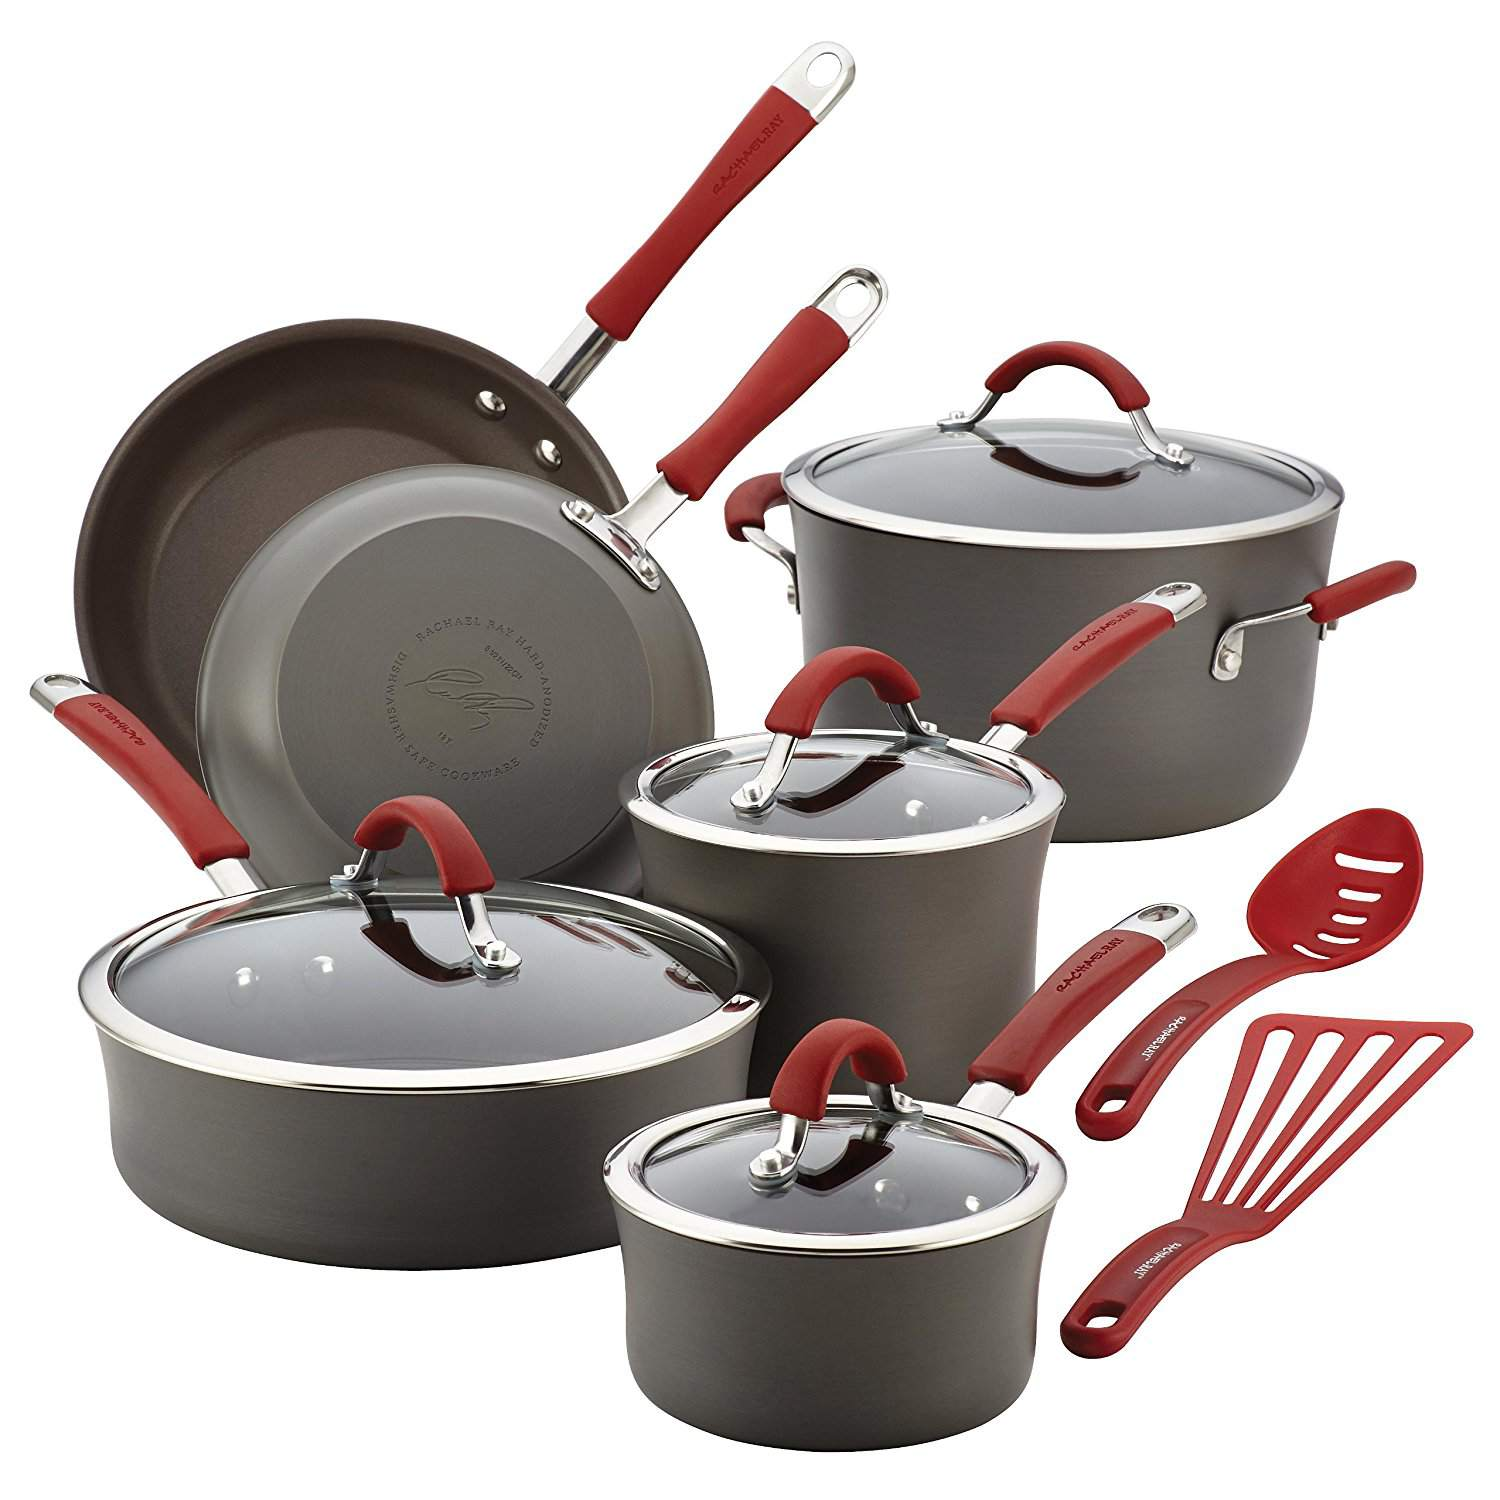 kitchen pan set tiffany blue accessories the 7 best nonstick cookware sets to buy in 2019 value rachael ray cucina 12 piece